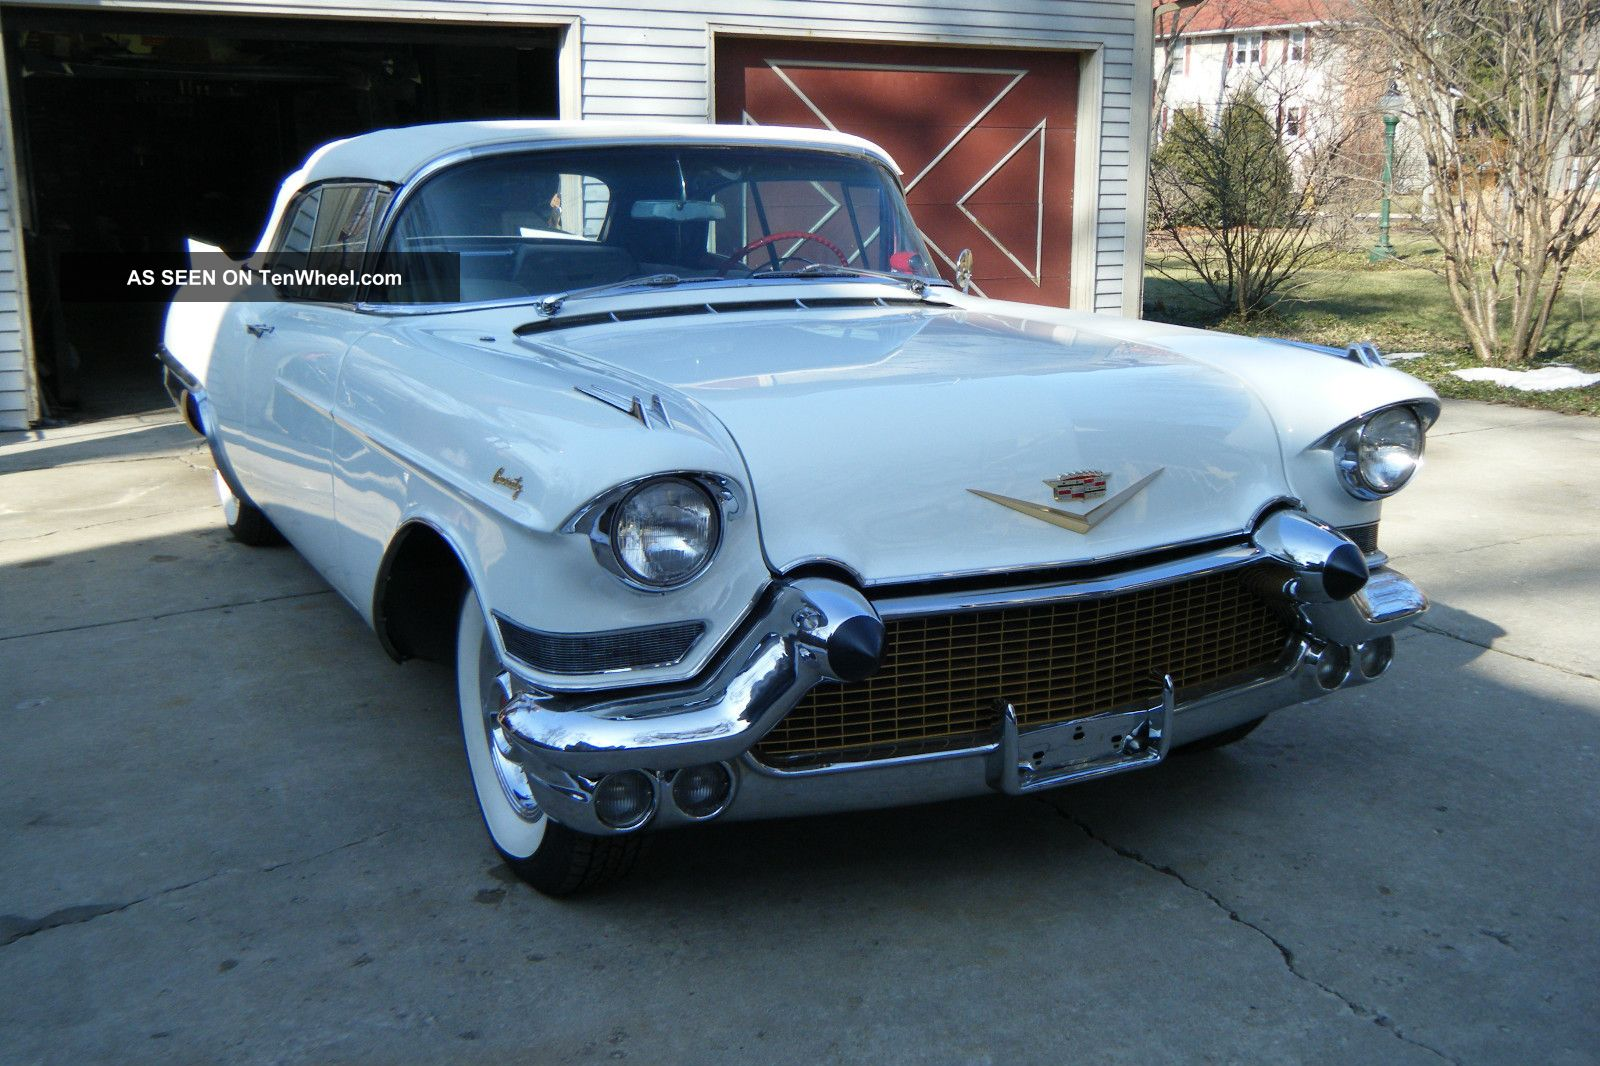 1957 Cadillac Eldorado Convertible Factory Air